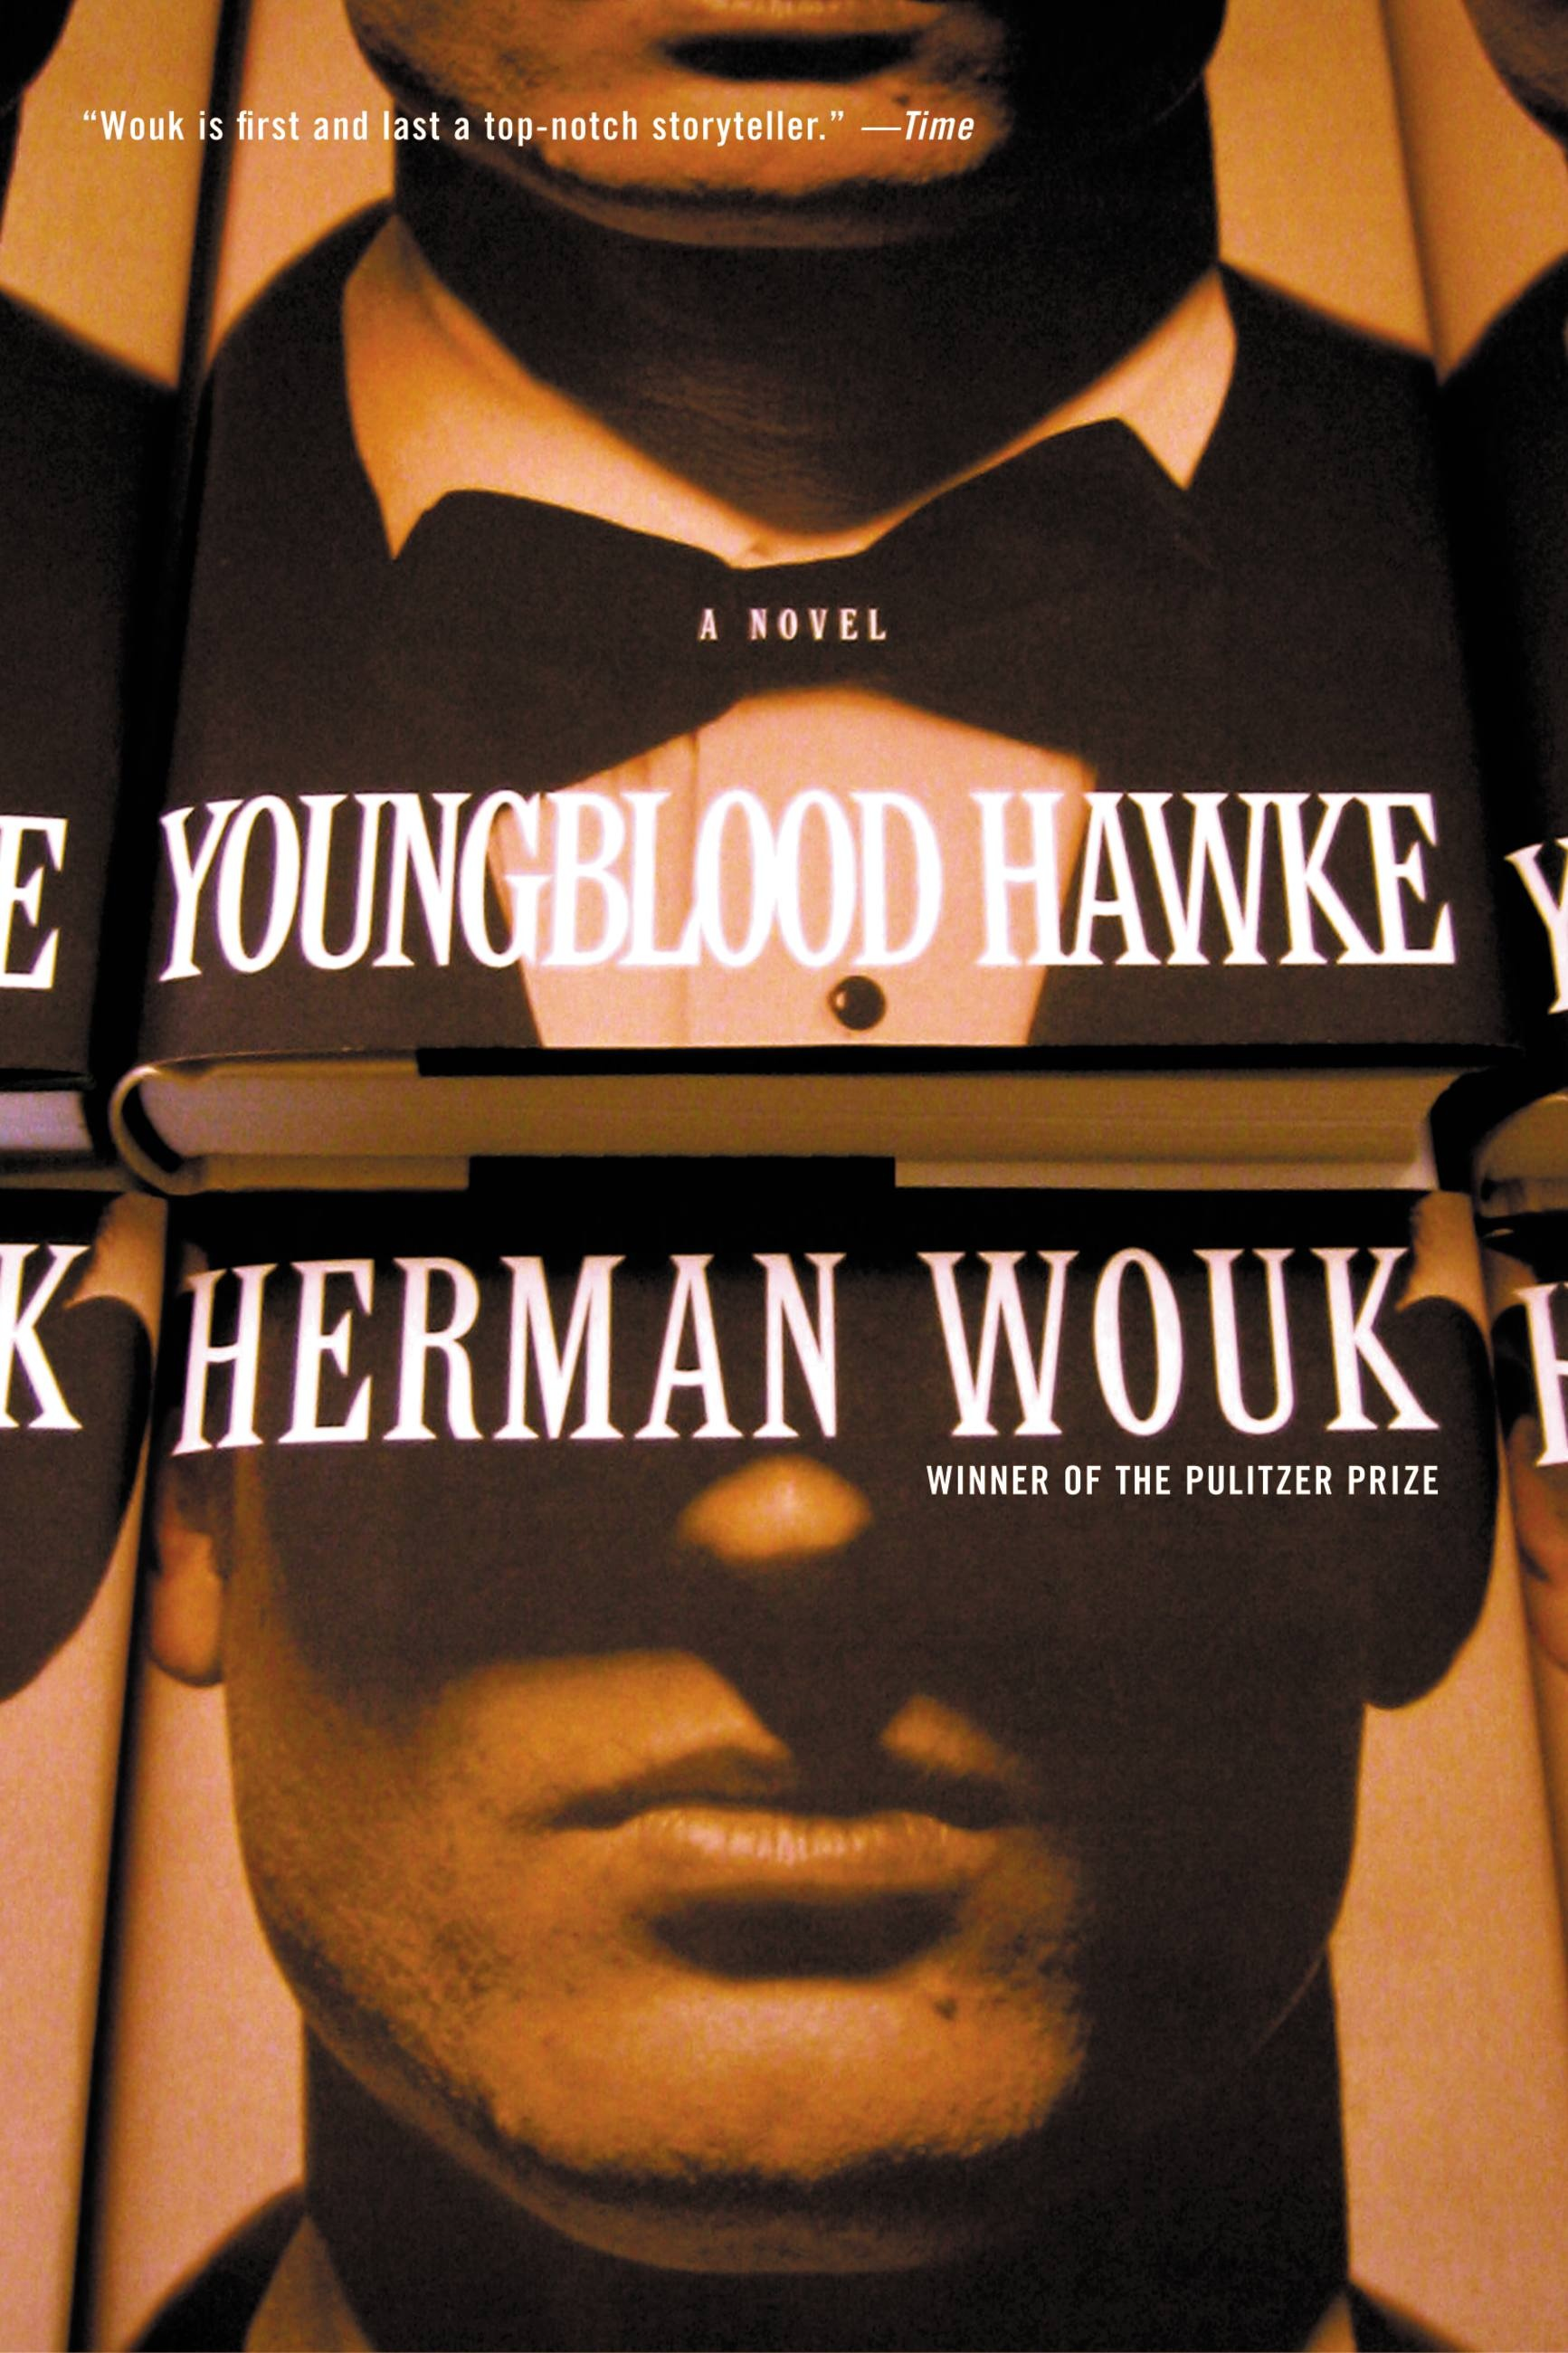 Youngblood Hawke by Herman Wouk | Hachette Book Group